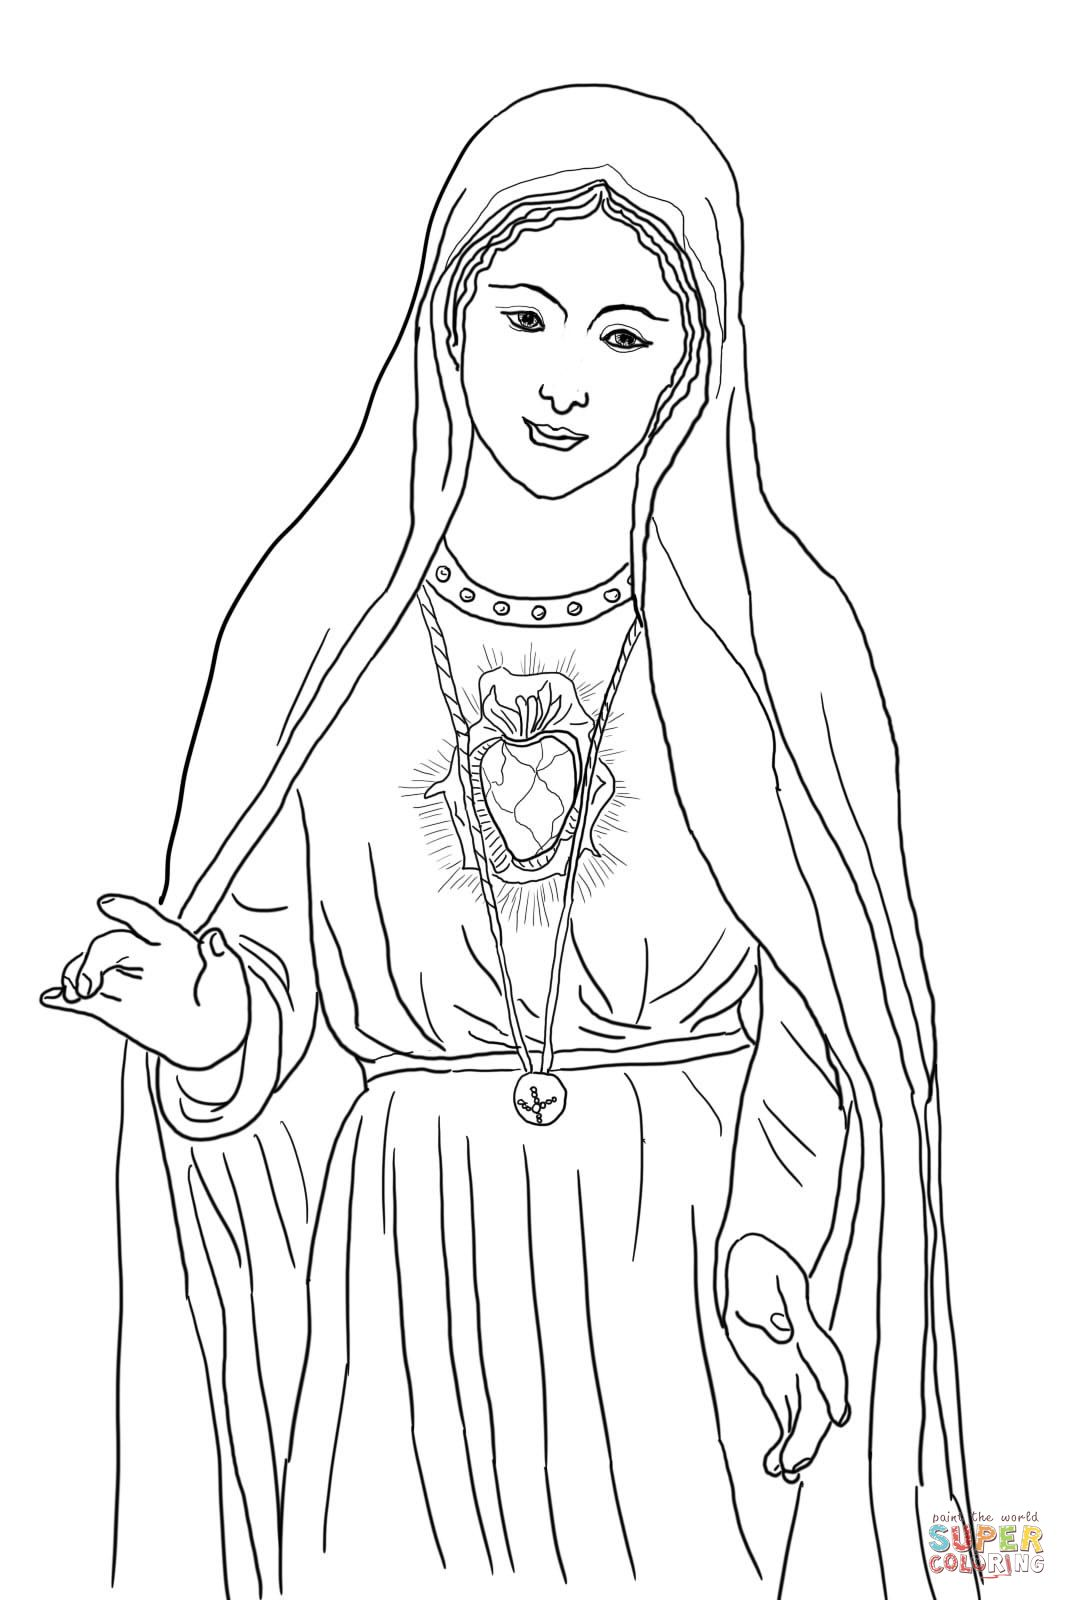 Immaculate Heart of Mary Coloring Online Heart coloring